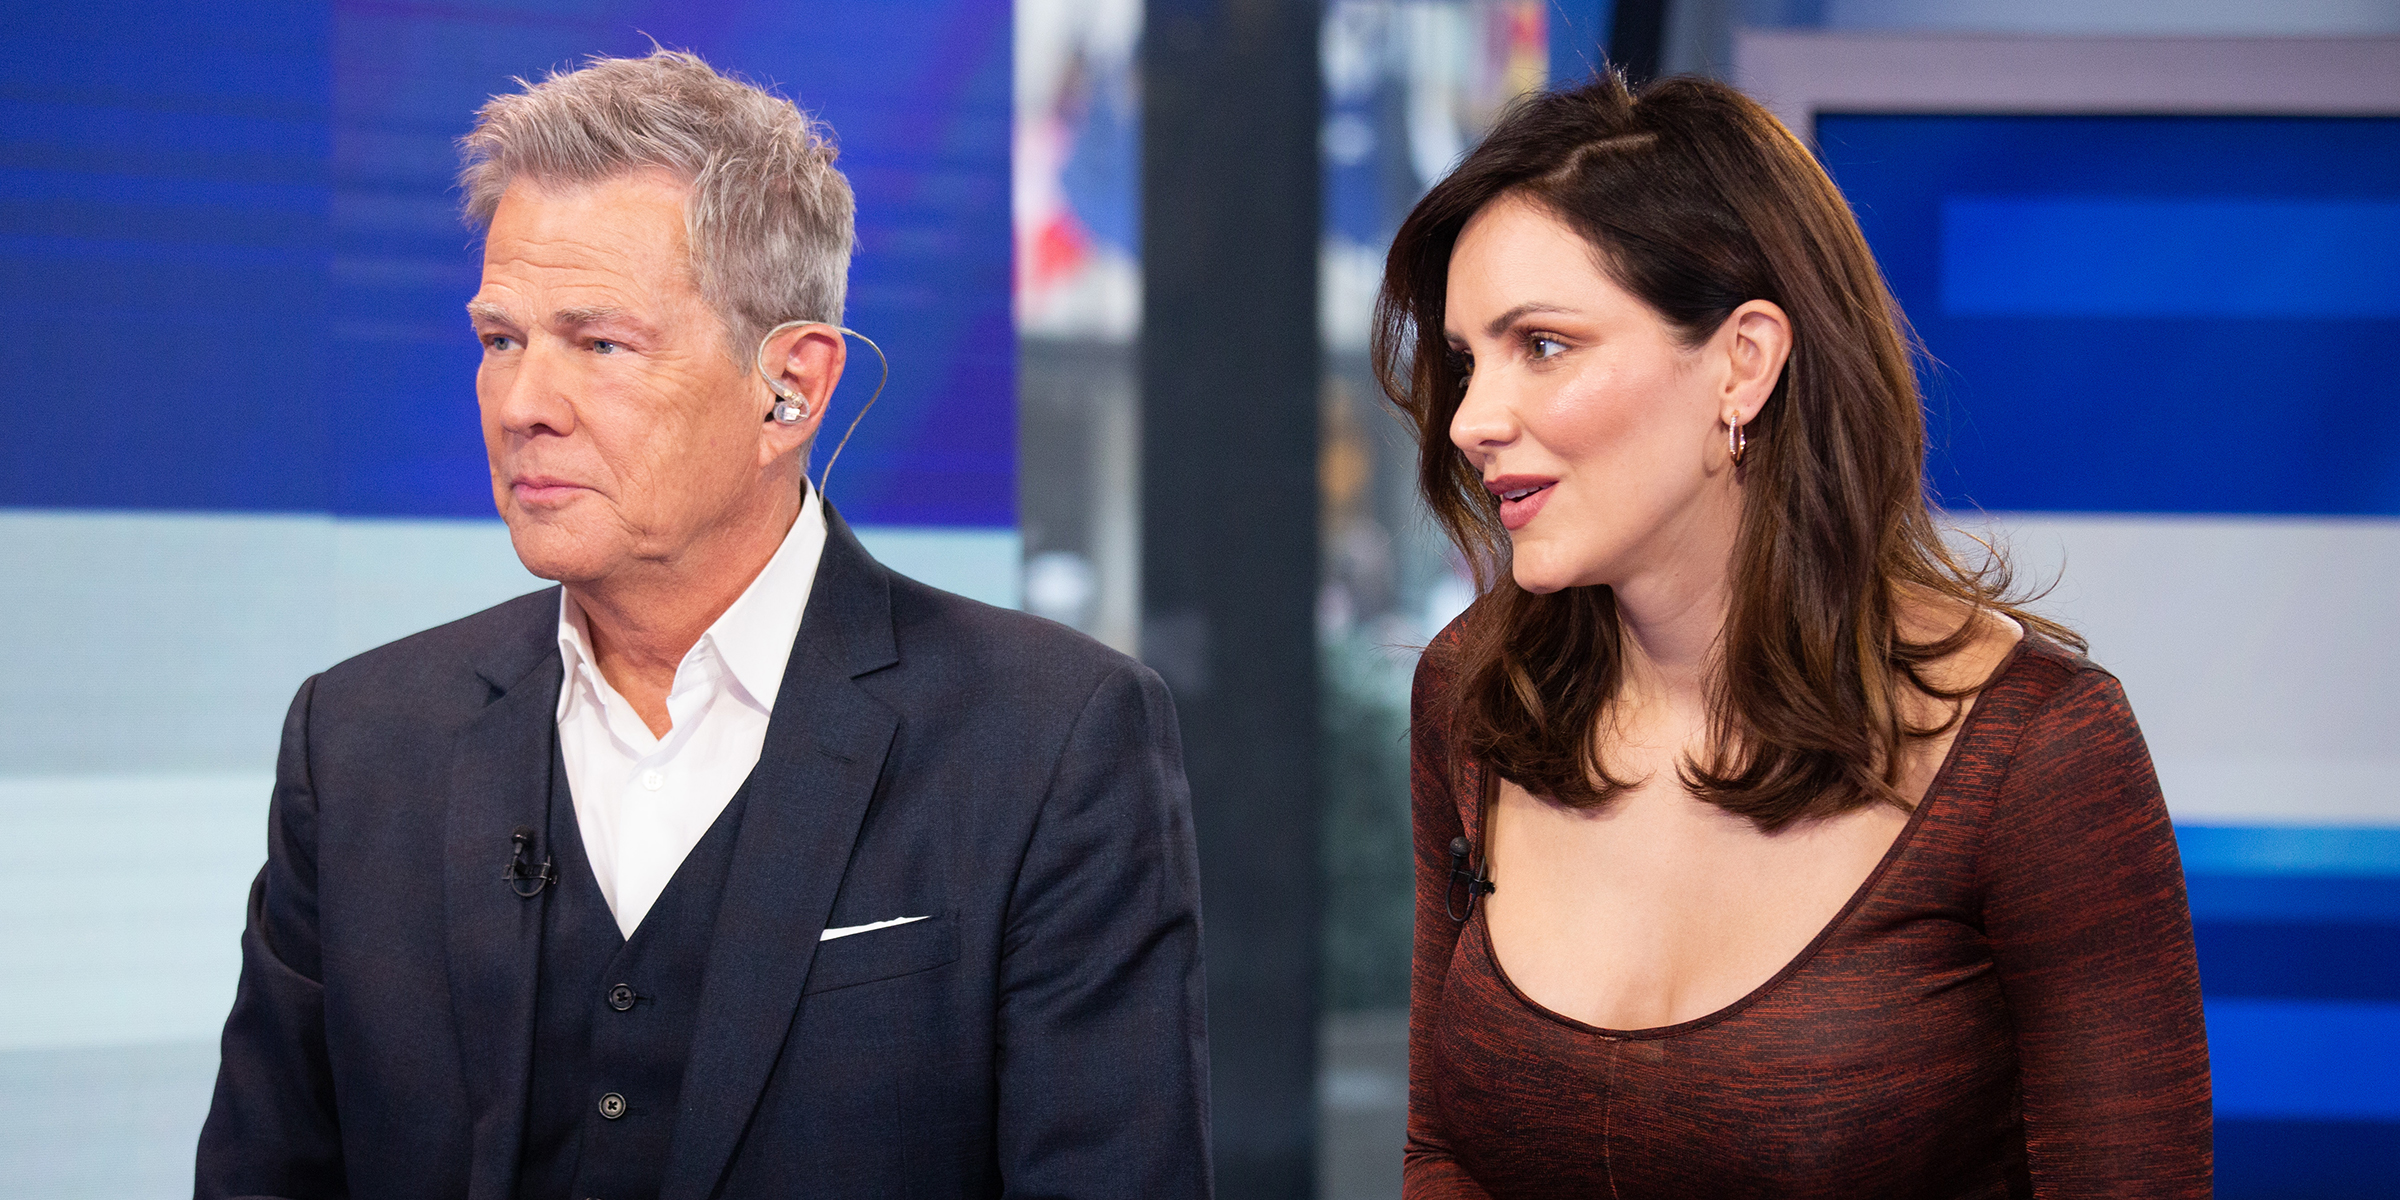 Katharine Mcphee Foster And David Foster Talk Romance A Natural Coming Together